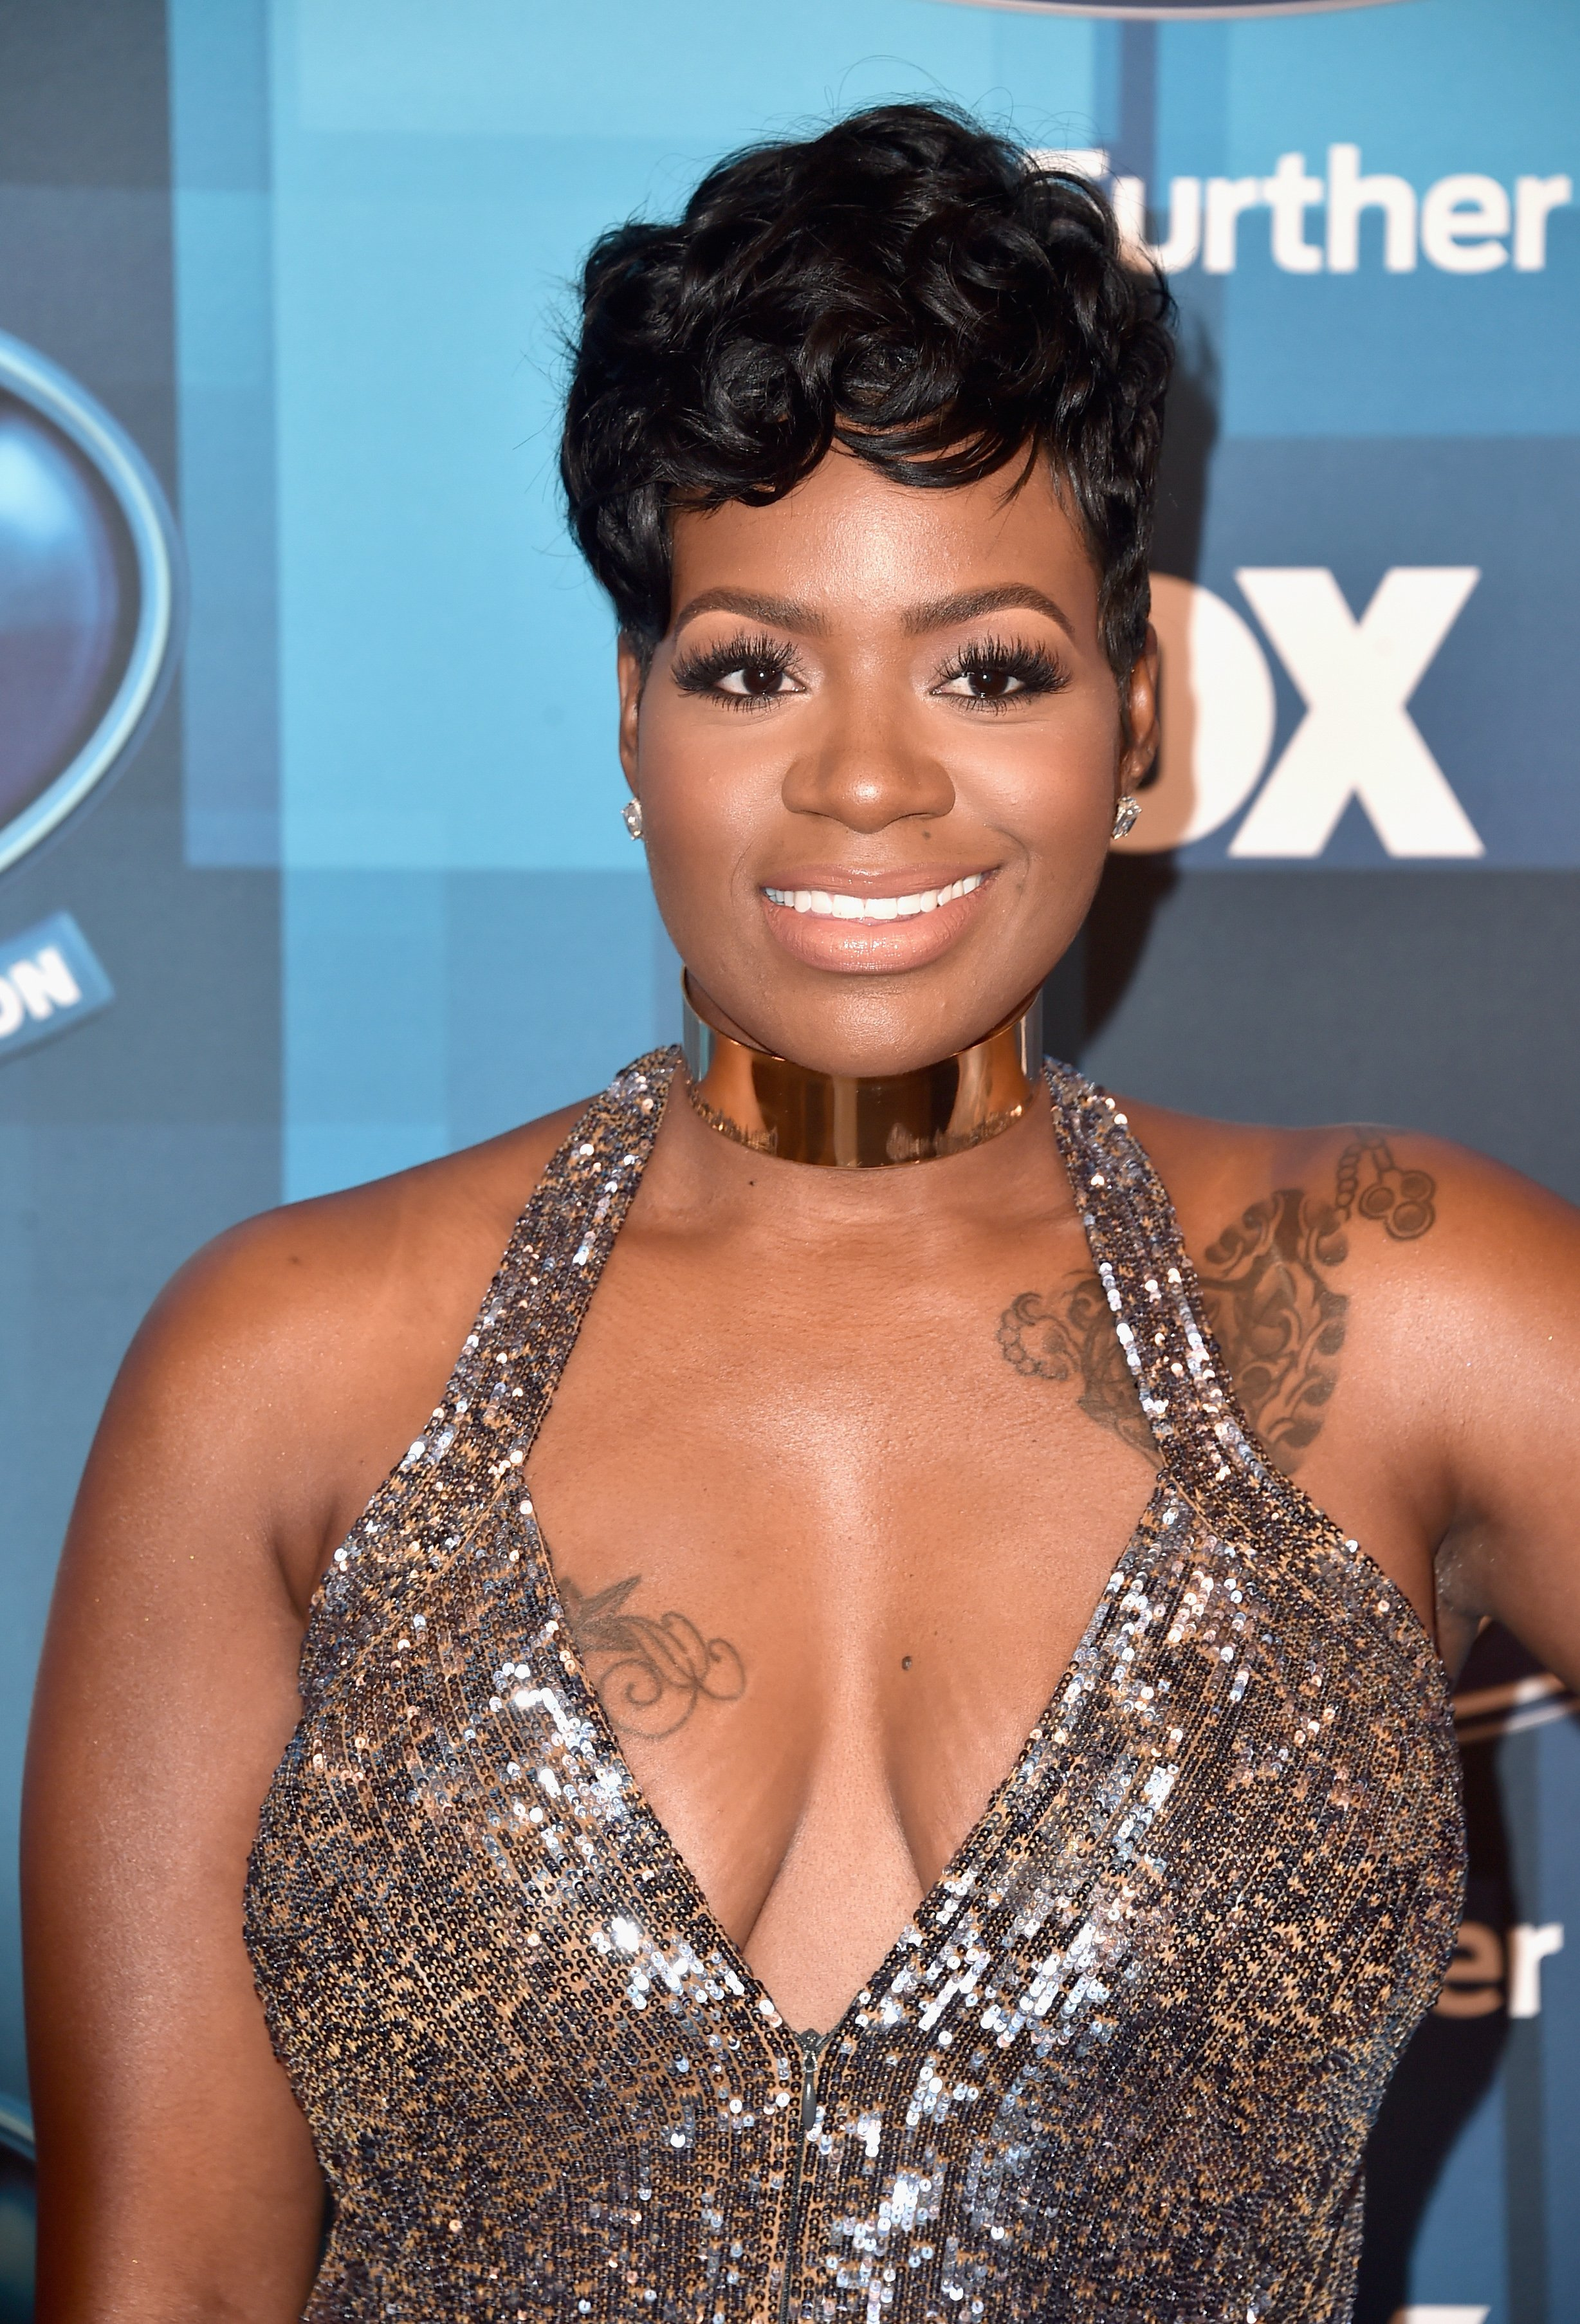 """Fantasia Barrino at the """"American Idol"""" finale on April 7, 2016 in California 